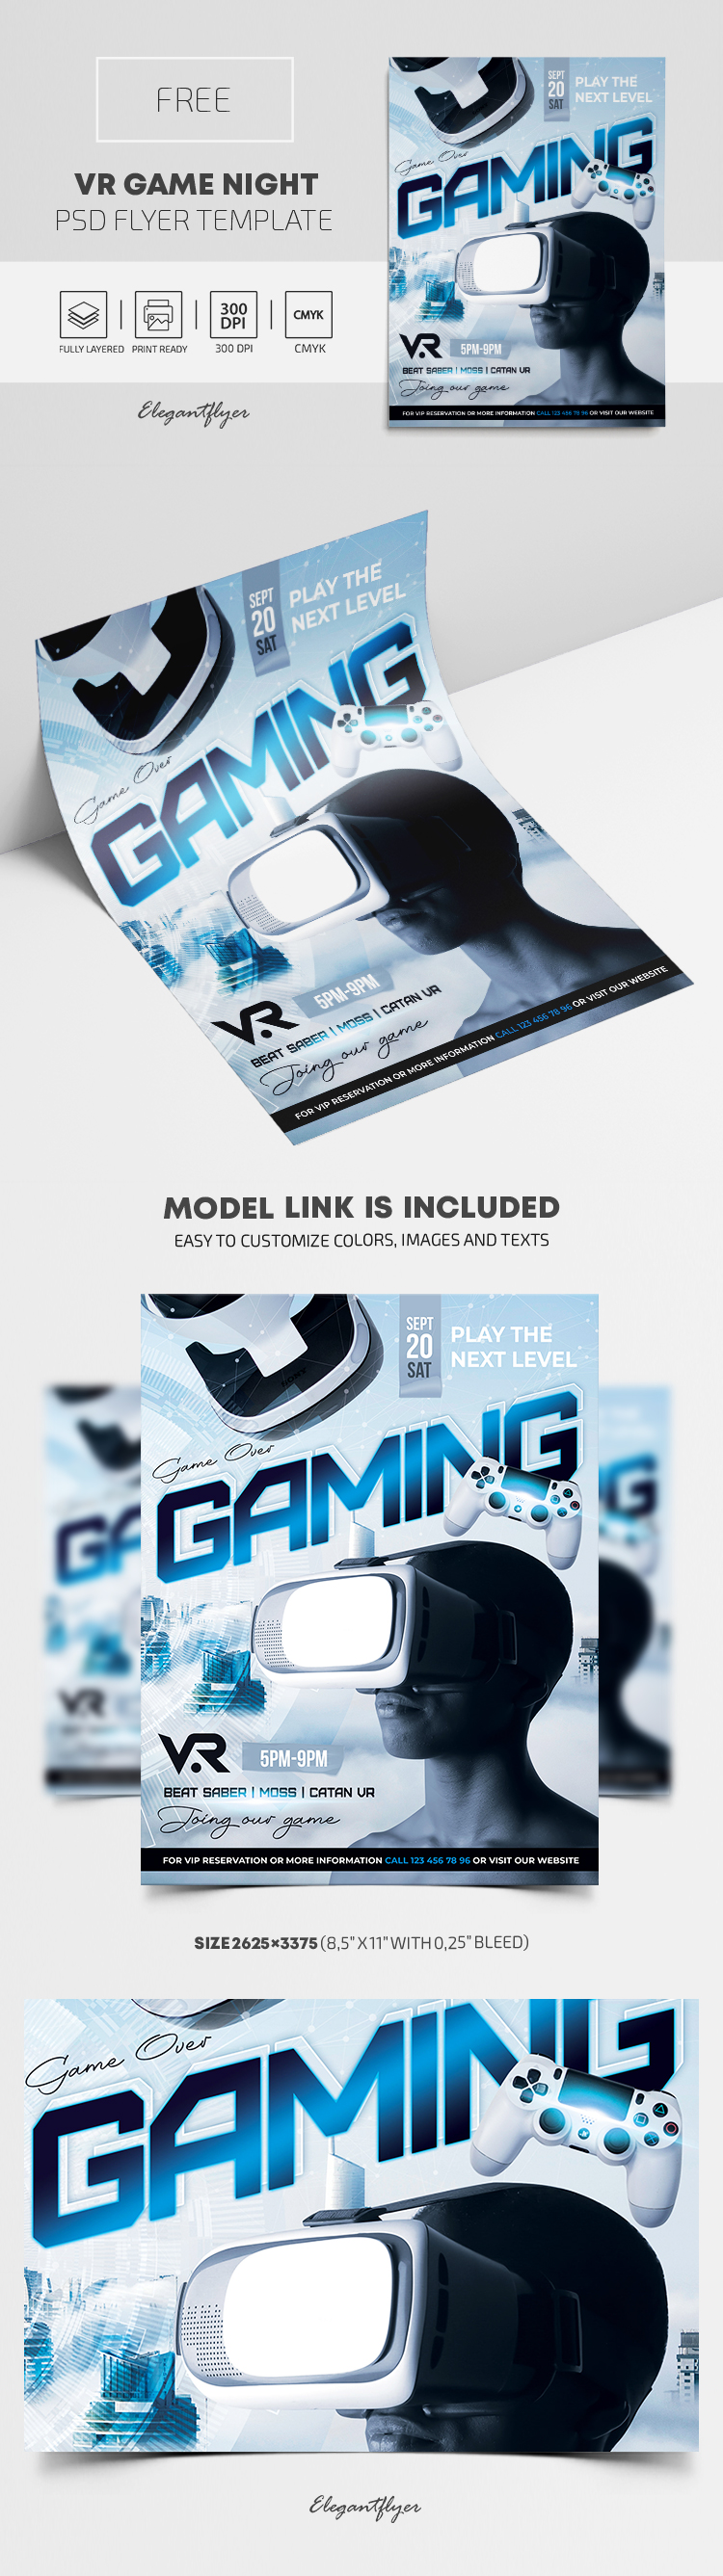 VR Game Night – Free Flyer PSD Template